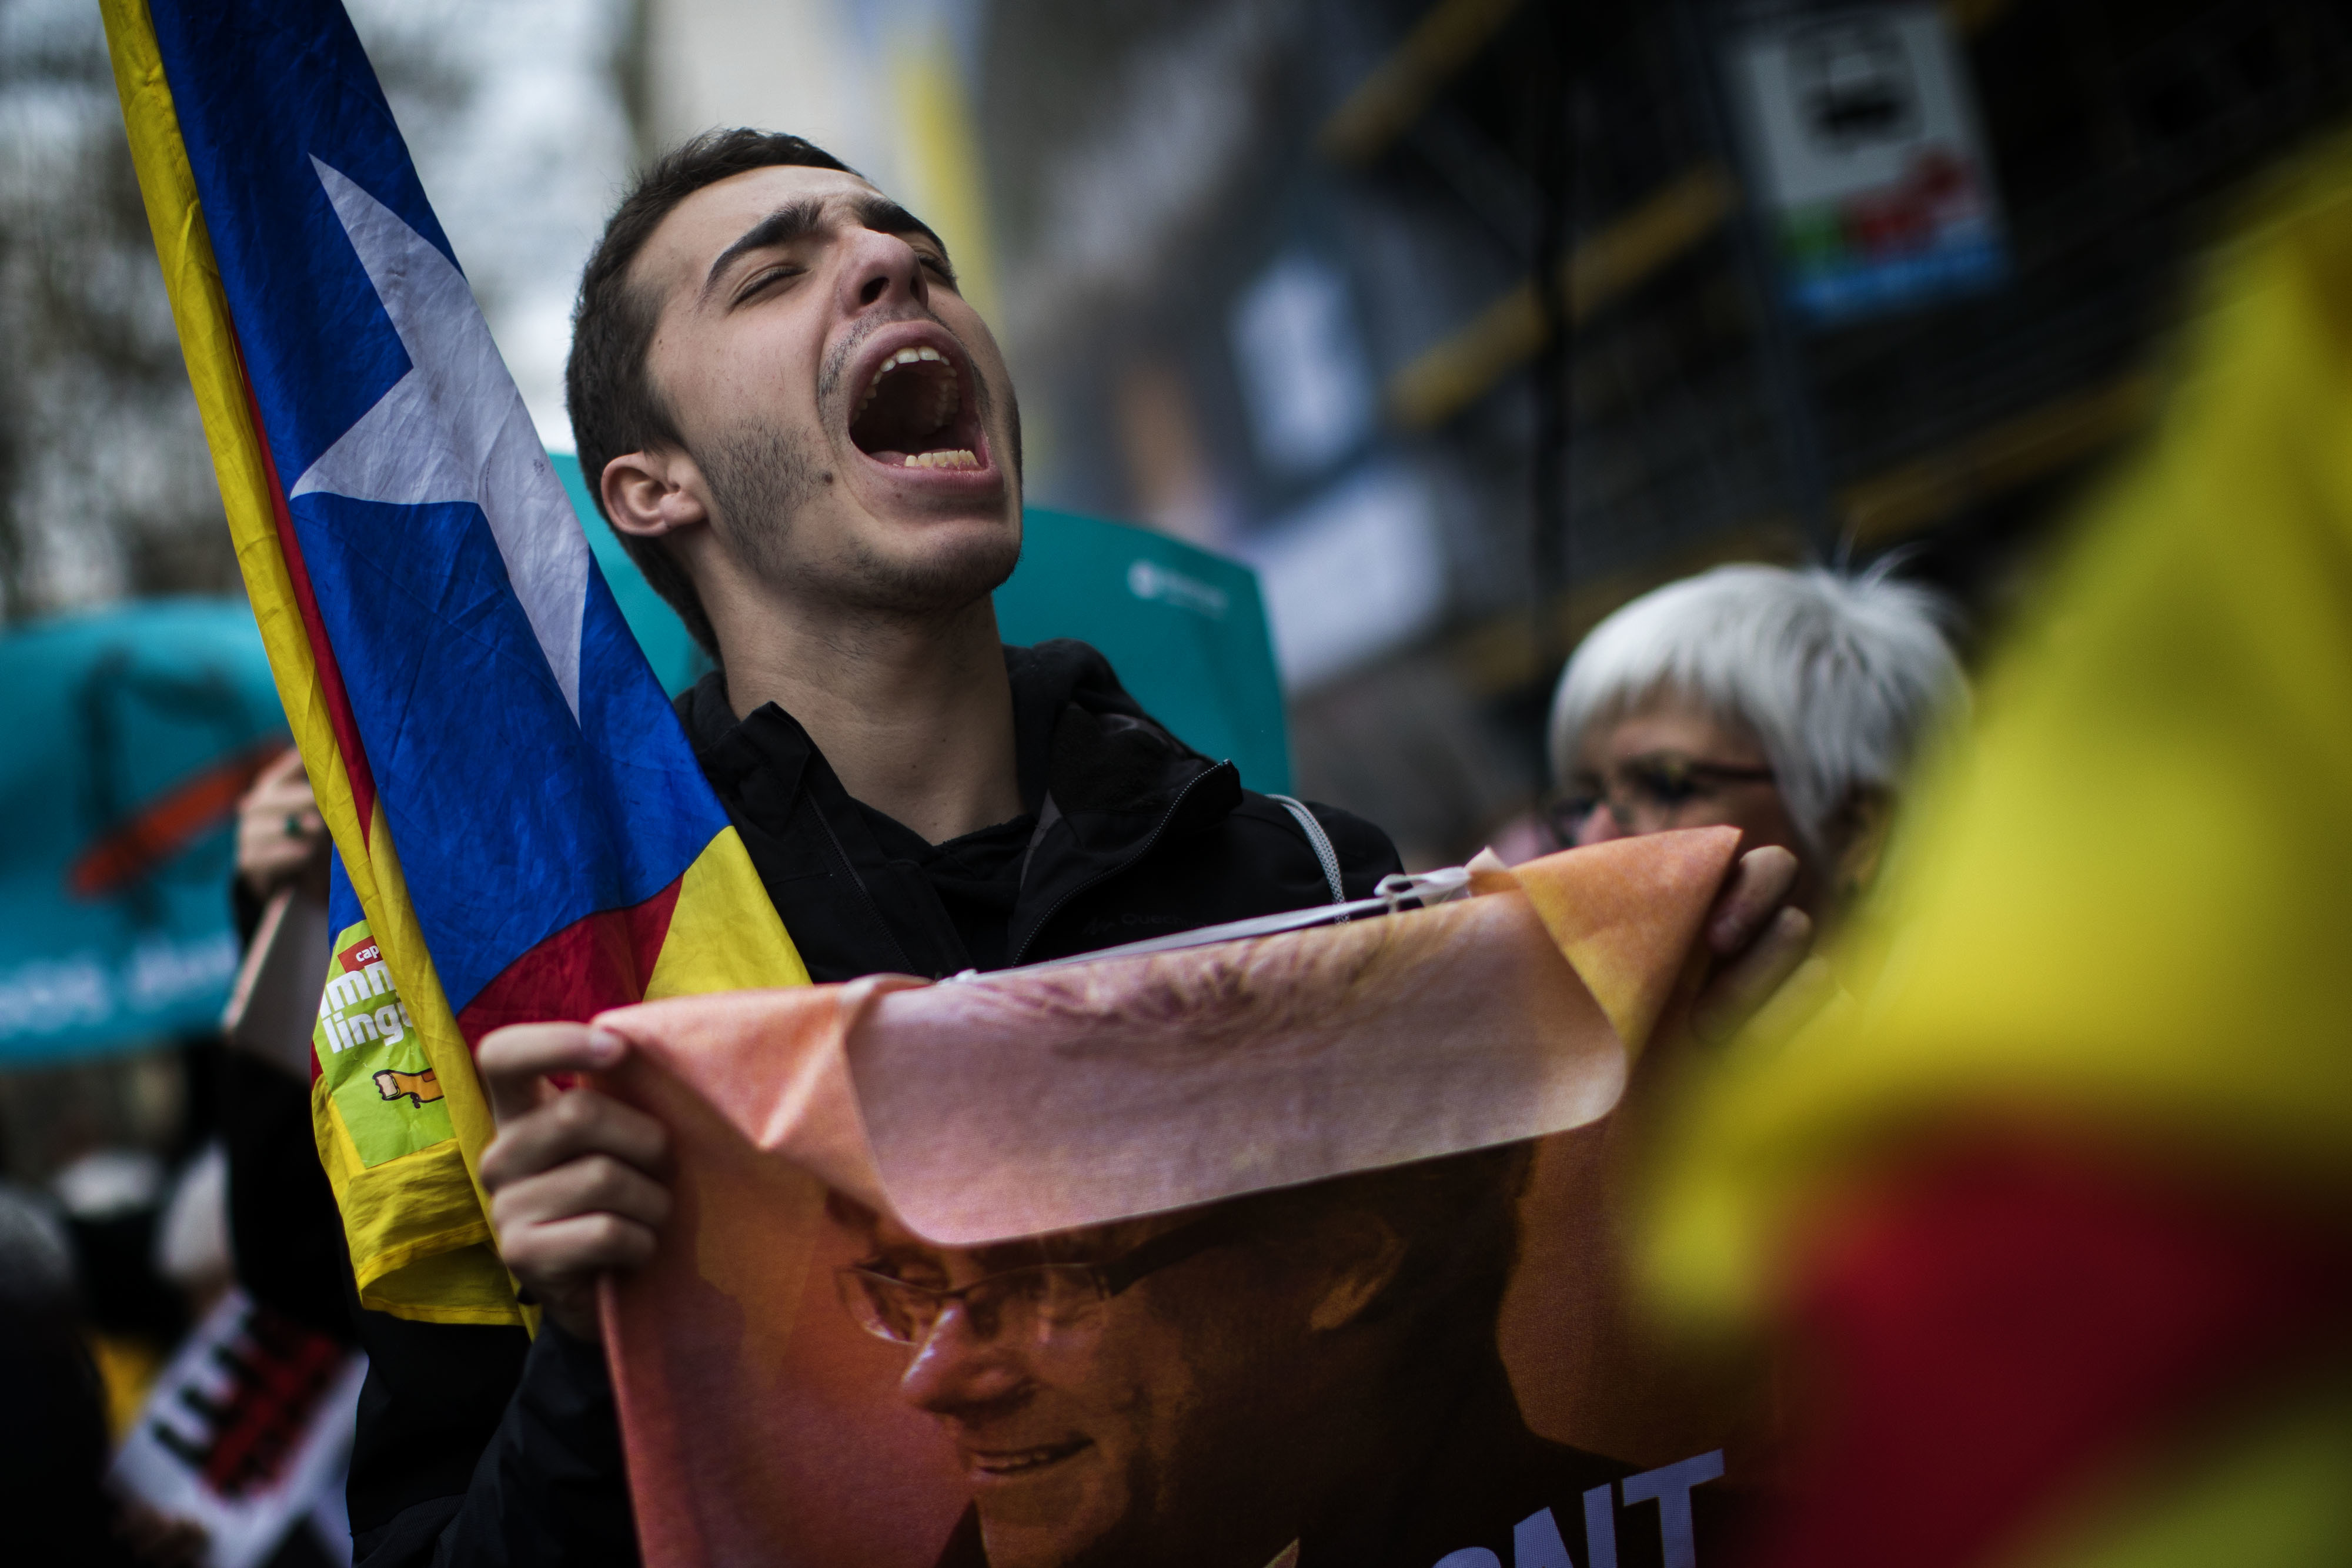 A pro-independence demonstrator holds a poster with